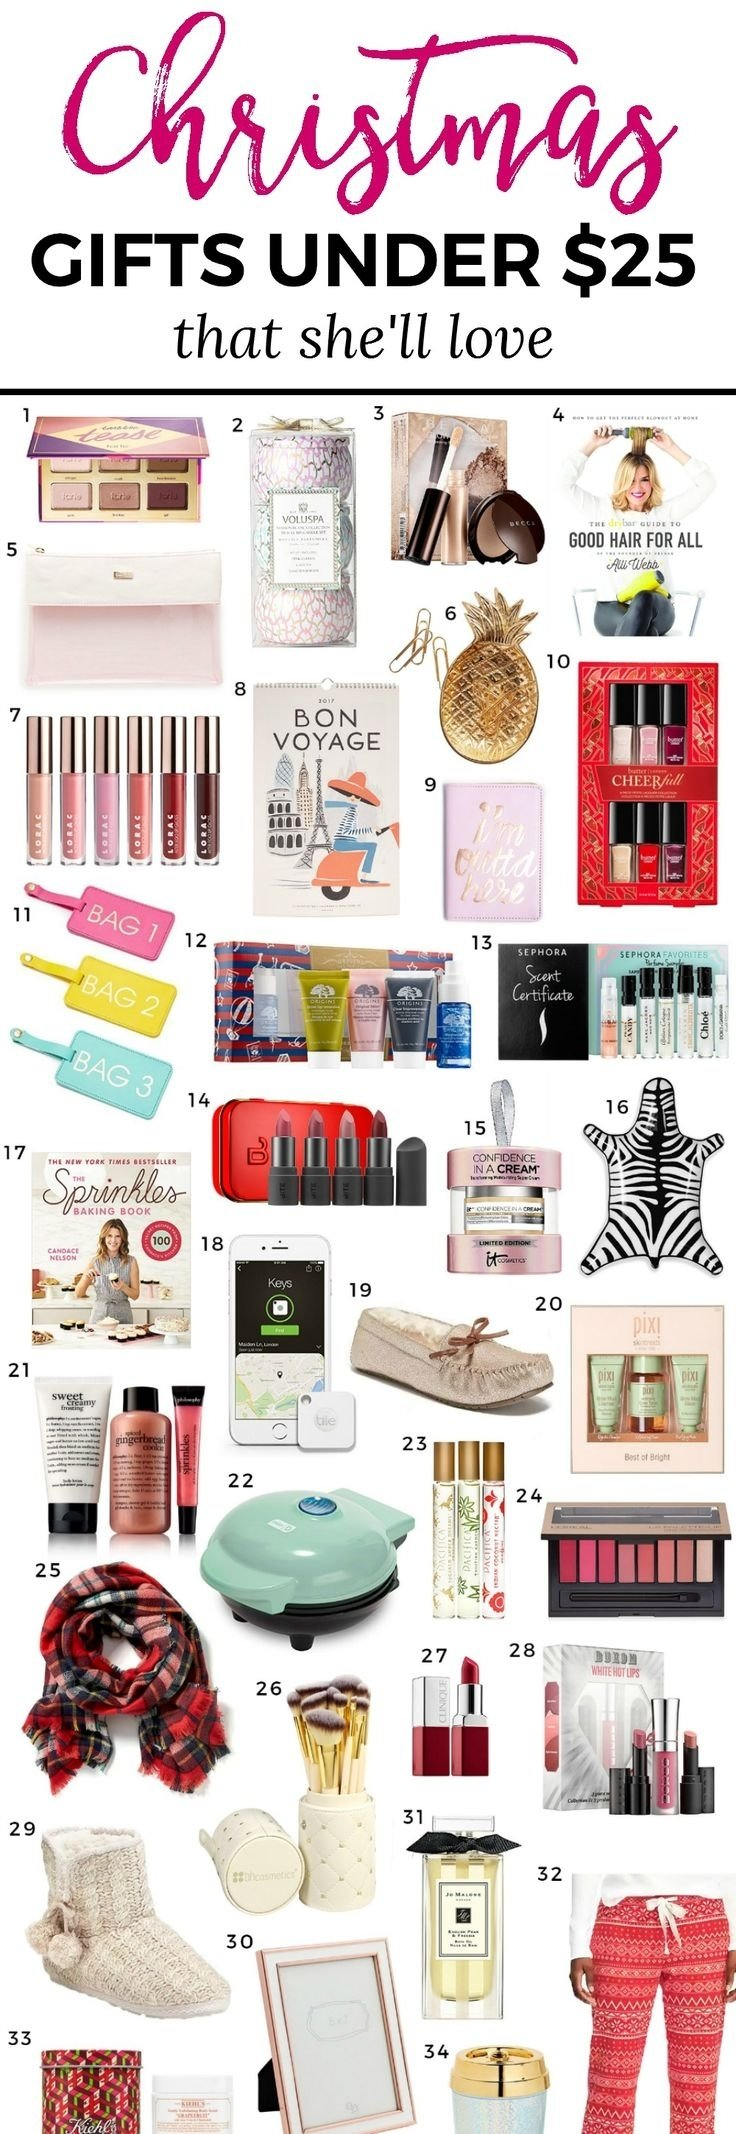 10 Ideal Great Christmas Gift Ideas For Girlfriend the best christmas gift ideas for women under 15 ashley brooke